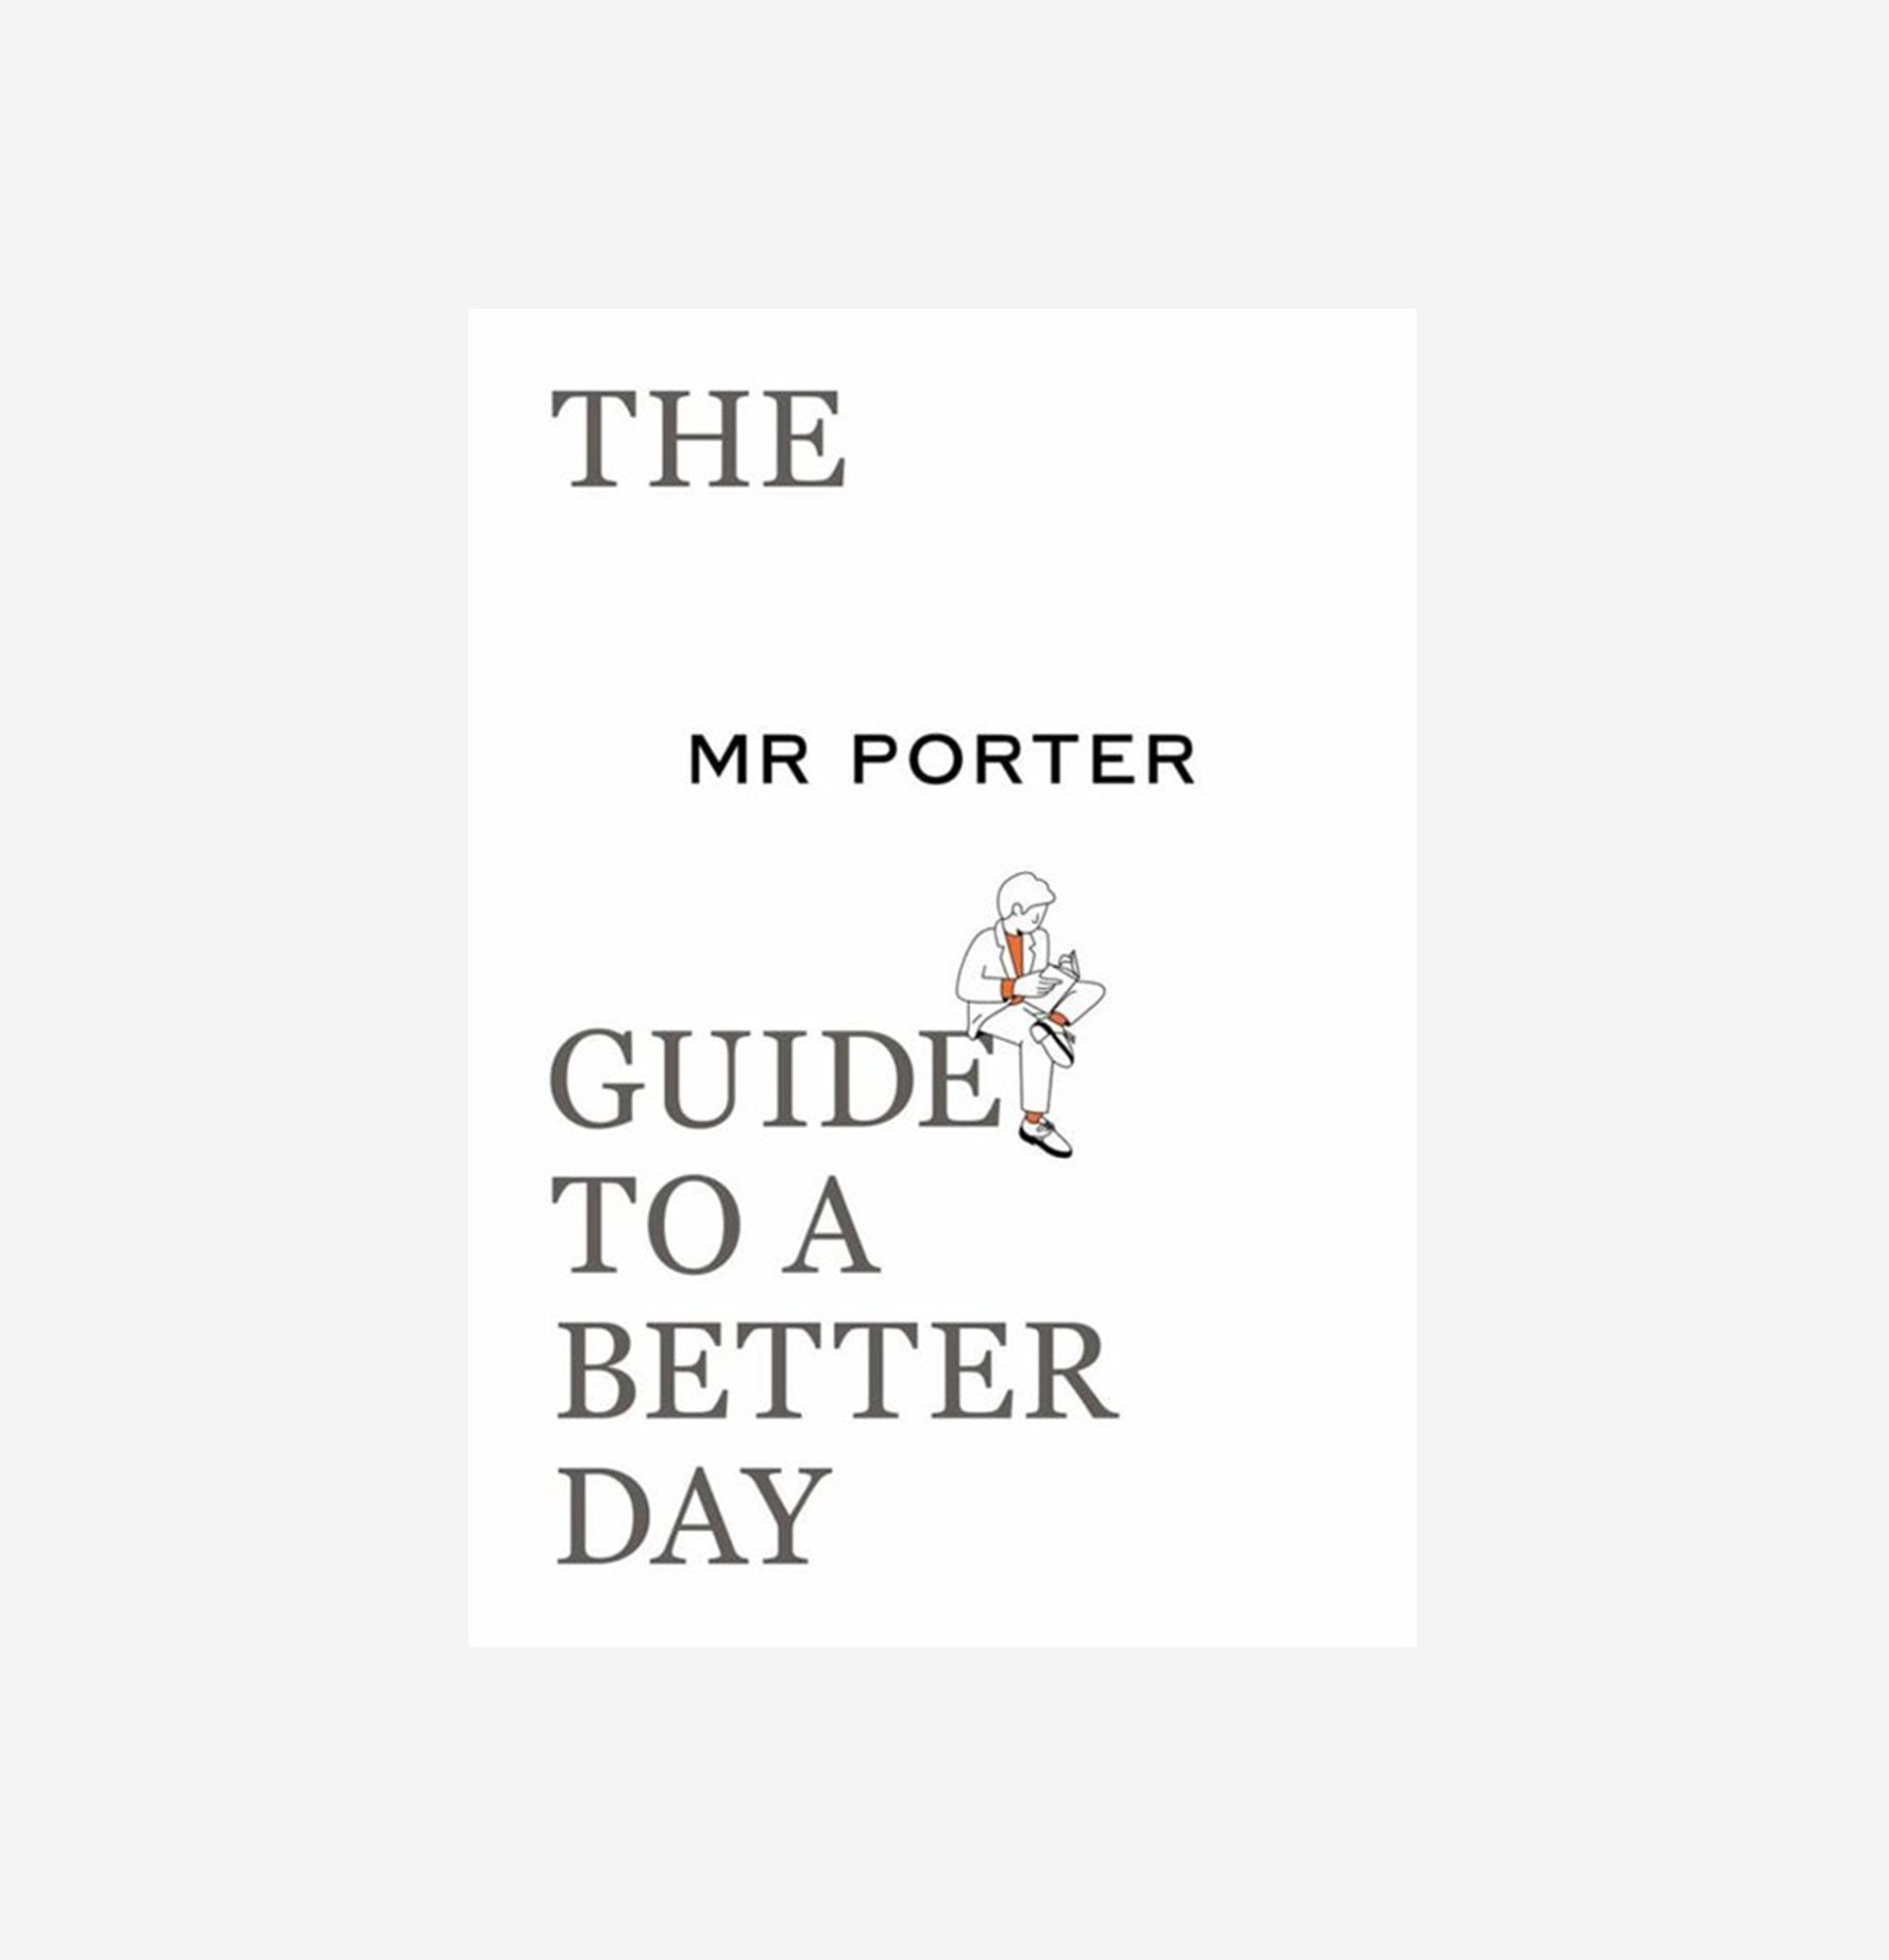 [The guide to a better day] - Book - James Ay